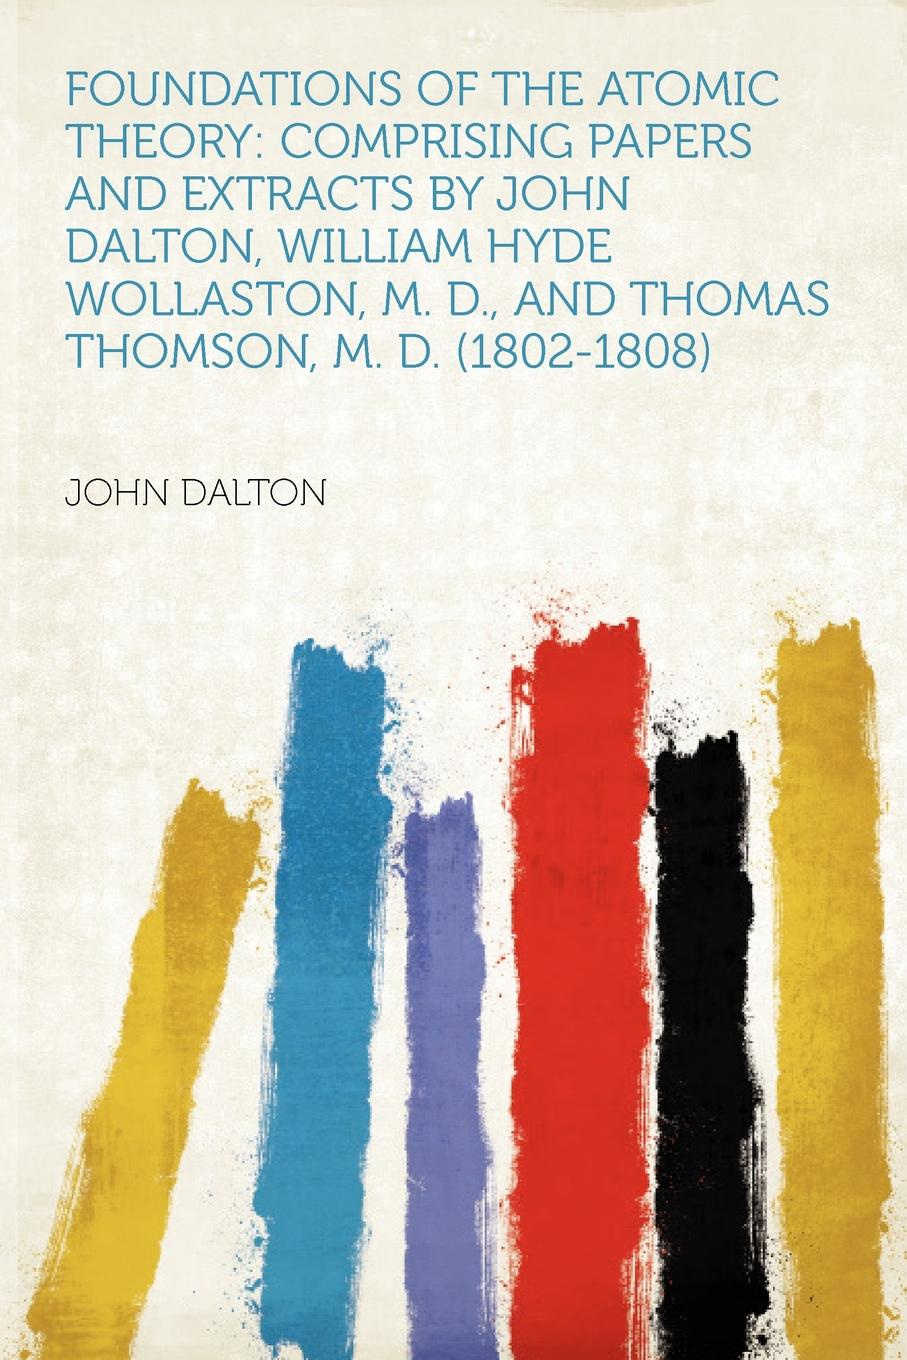 John Dalton Foundations of the Atomic Theory. Comprising Papers and Extracts by John Dalton, William Hyde Wollaston, M. D., and Thomas Thomson, M. D. (1802-1808) john dalton and others foundations of the molecular theory